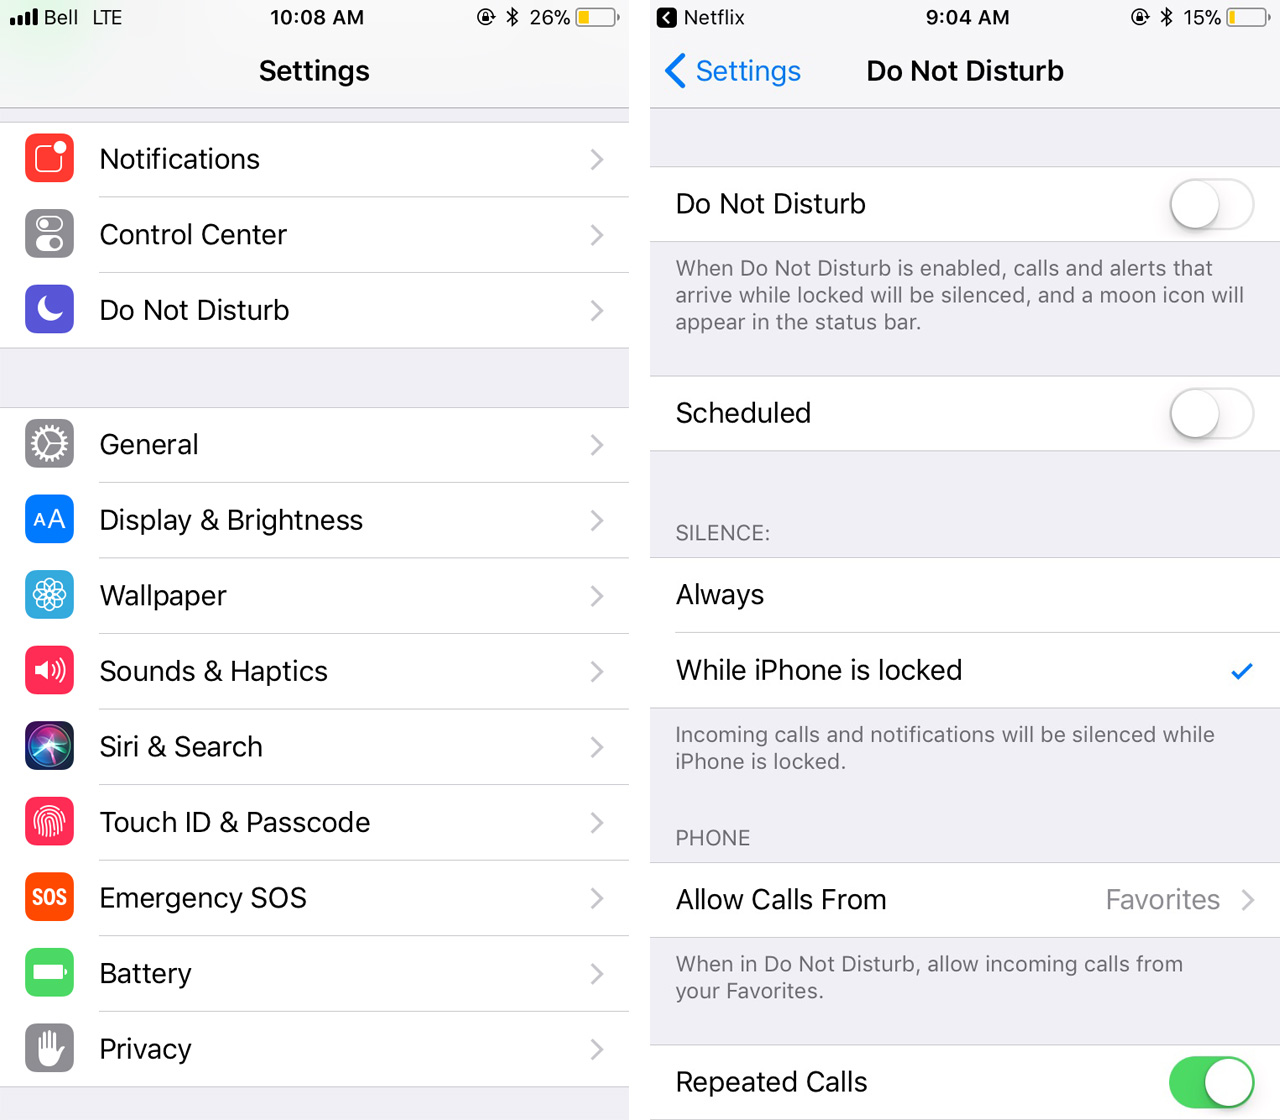 An image of the settings menu and the Do Not Disturb menu